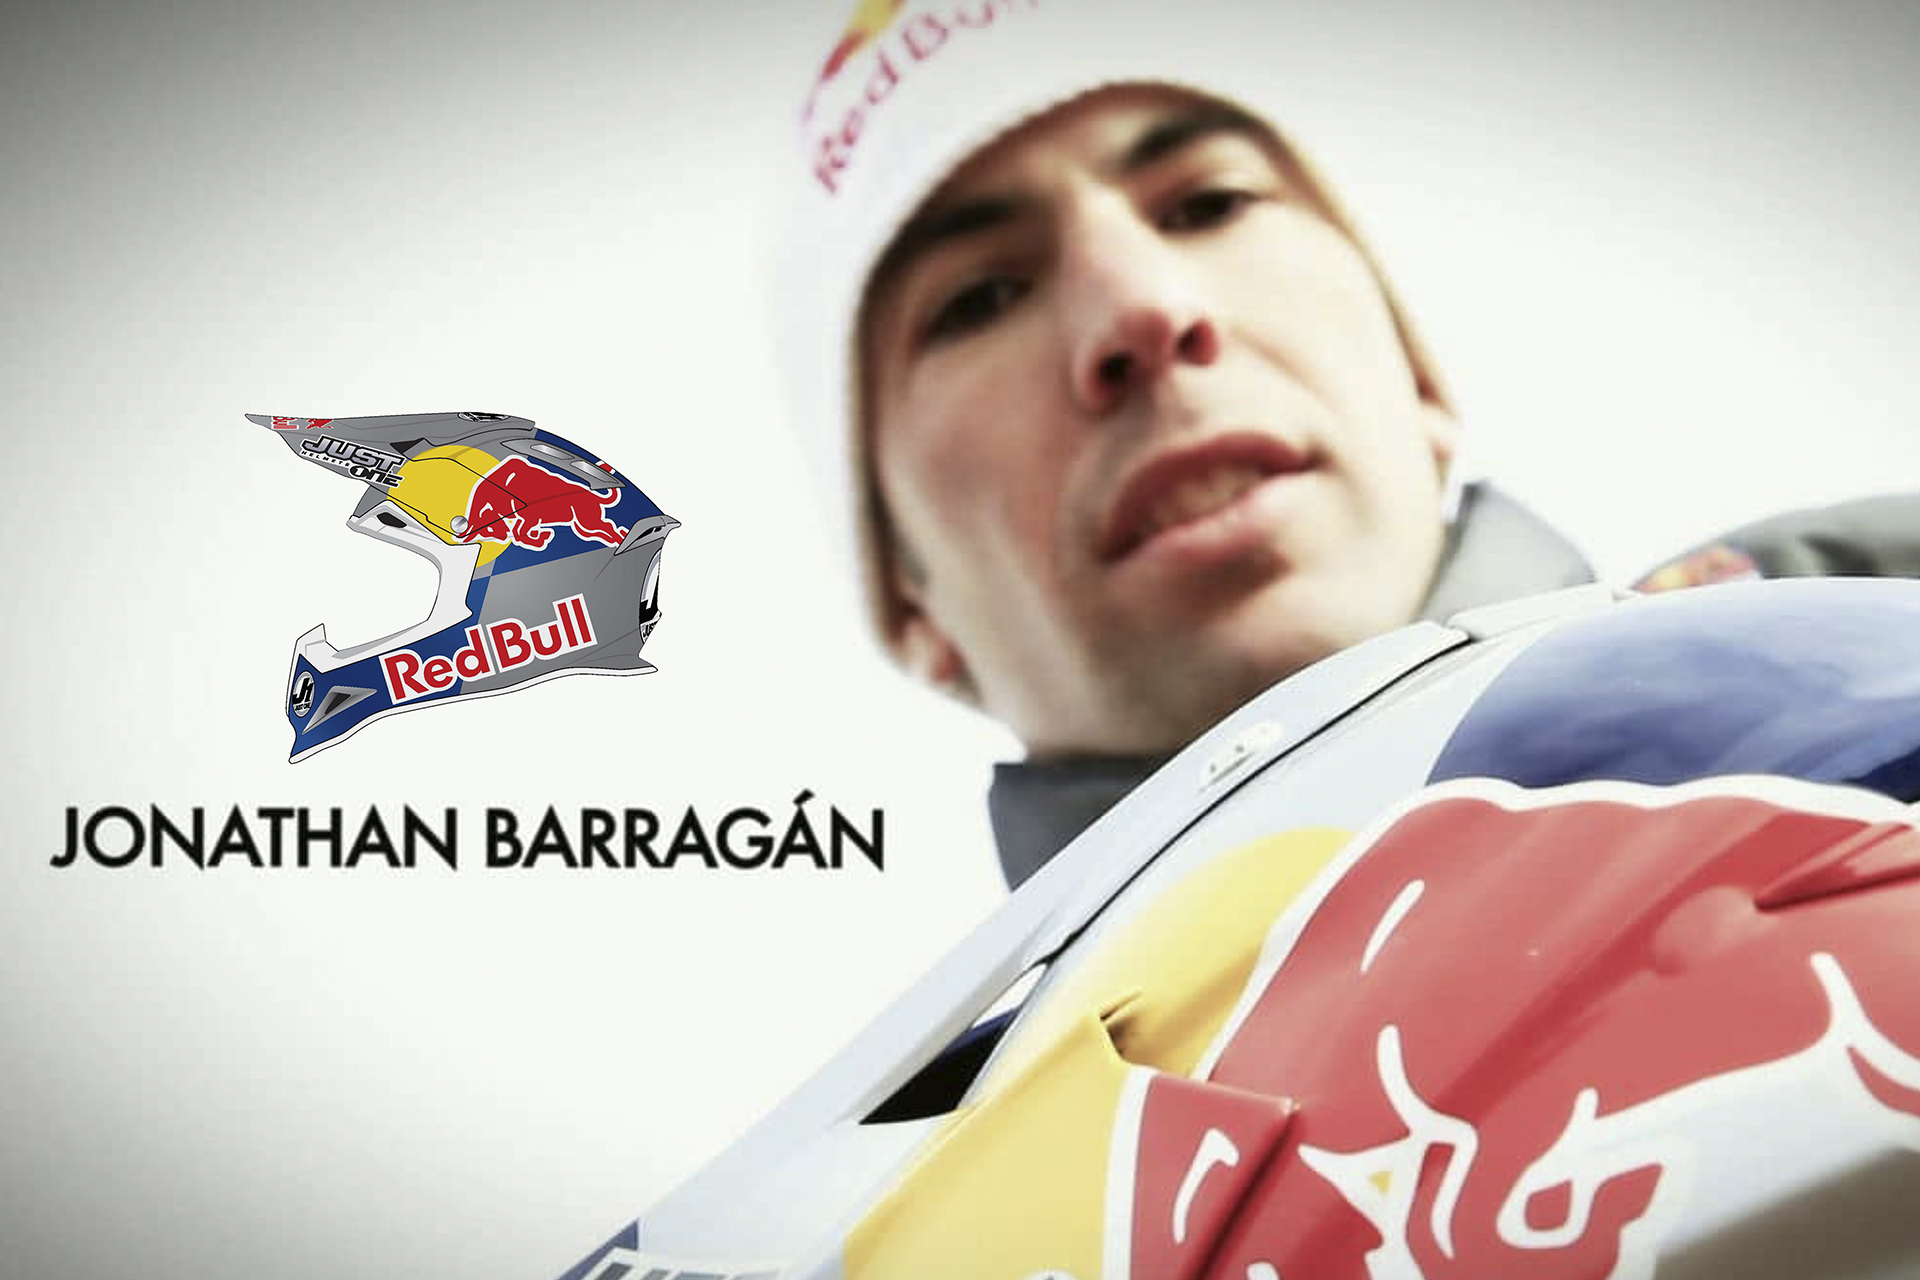 onafez design just one mx gear off-road red bull barragan helmets